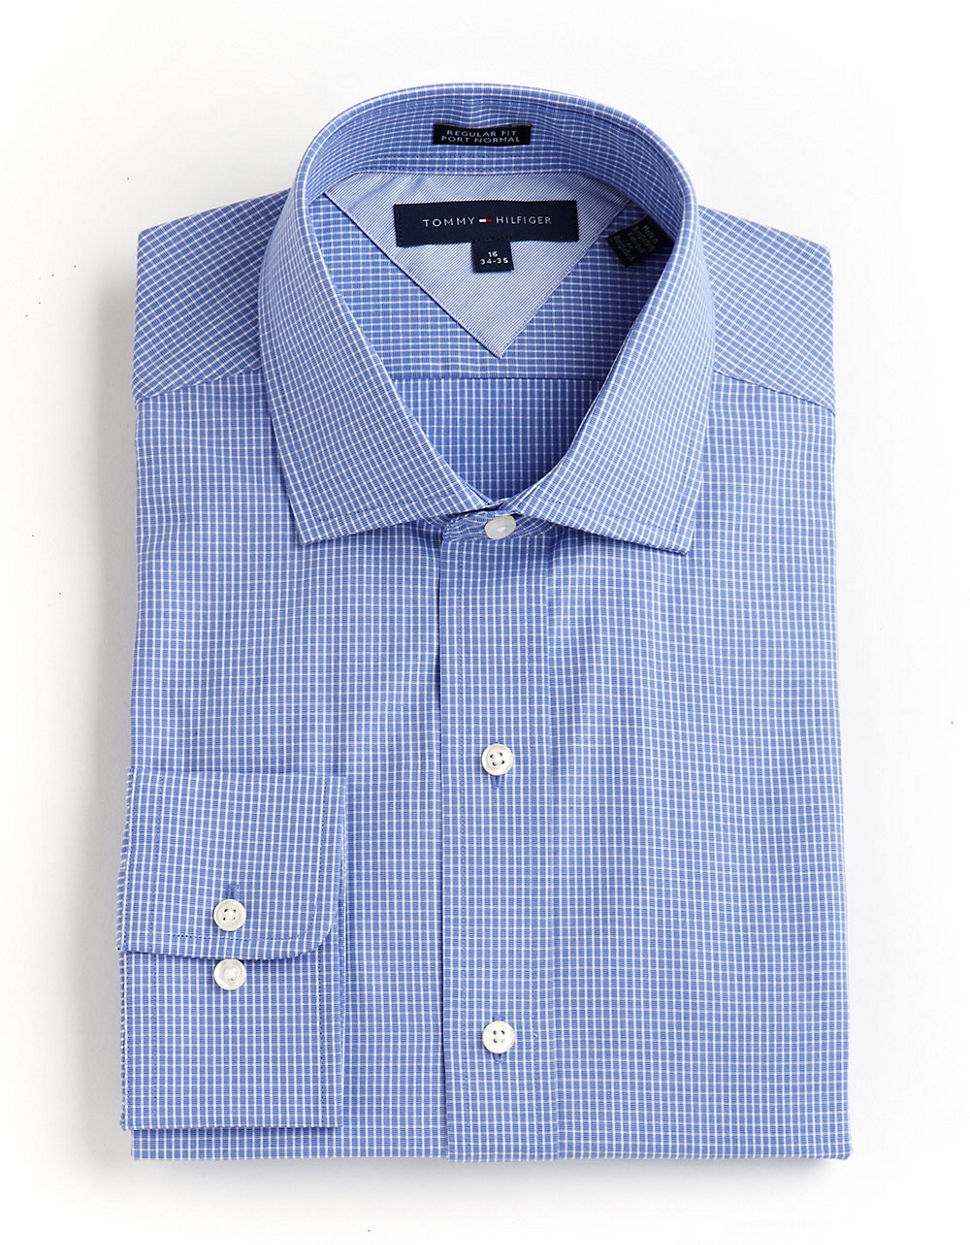 Tommy hilfiger Tommy Hilfiger Ls Regular Fit Dress Shirt blue 165  34/35